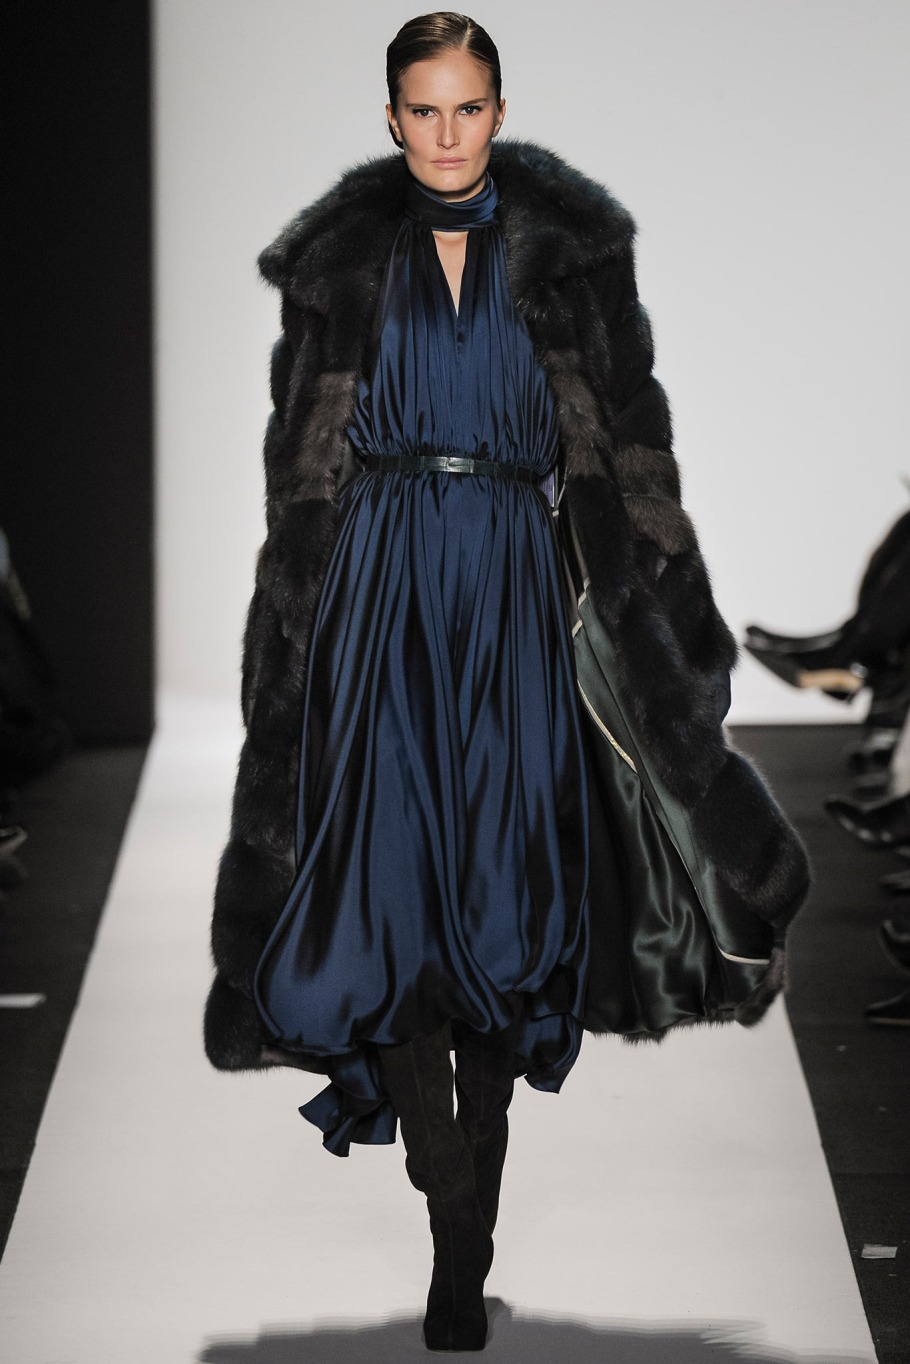 Dennis Basso Fall/Winter 2014 Collection New York Fashion Week